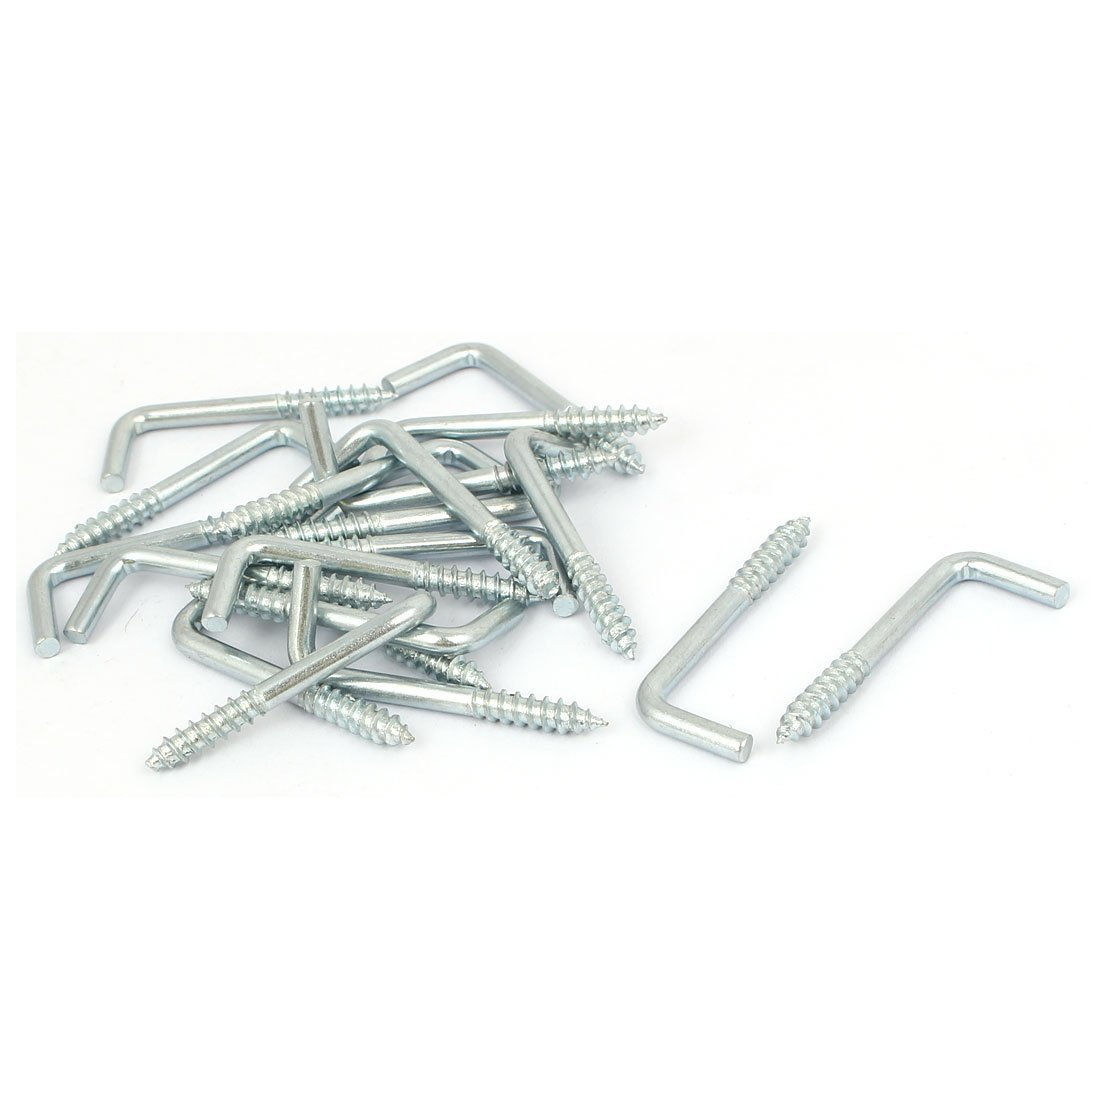 Home Wall M4x38mm L Shaped Self Tapping Metal Screw Hook Picture Hanger 100PCS